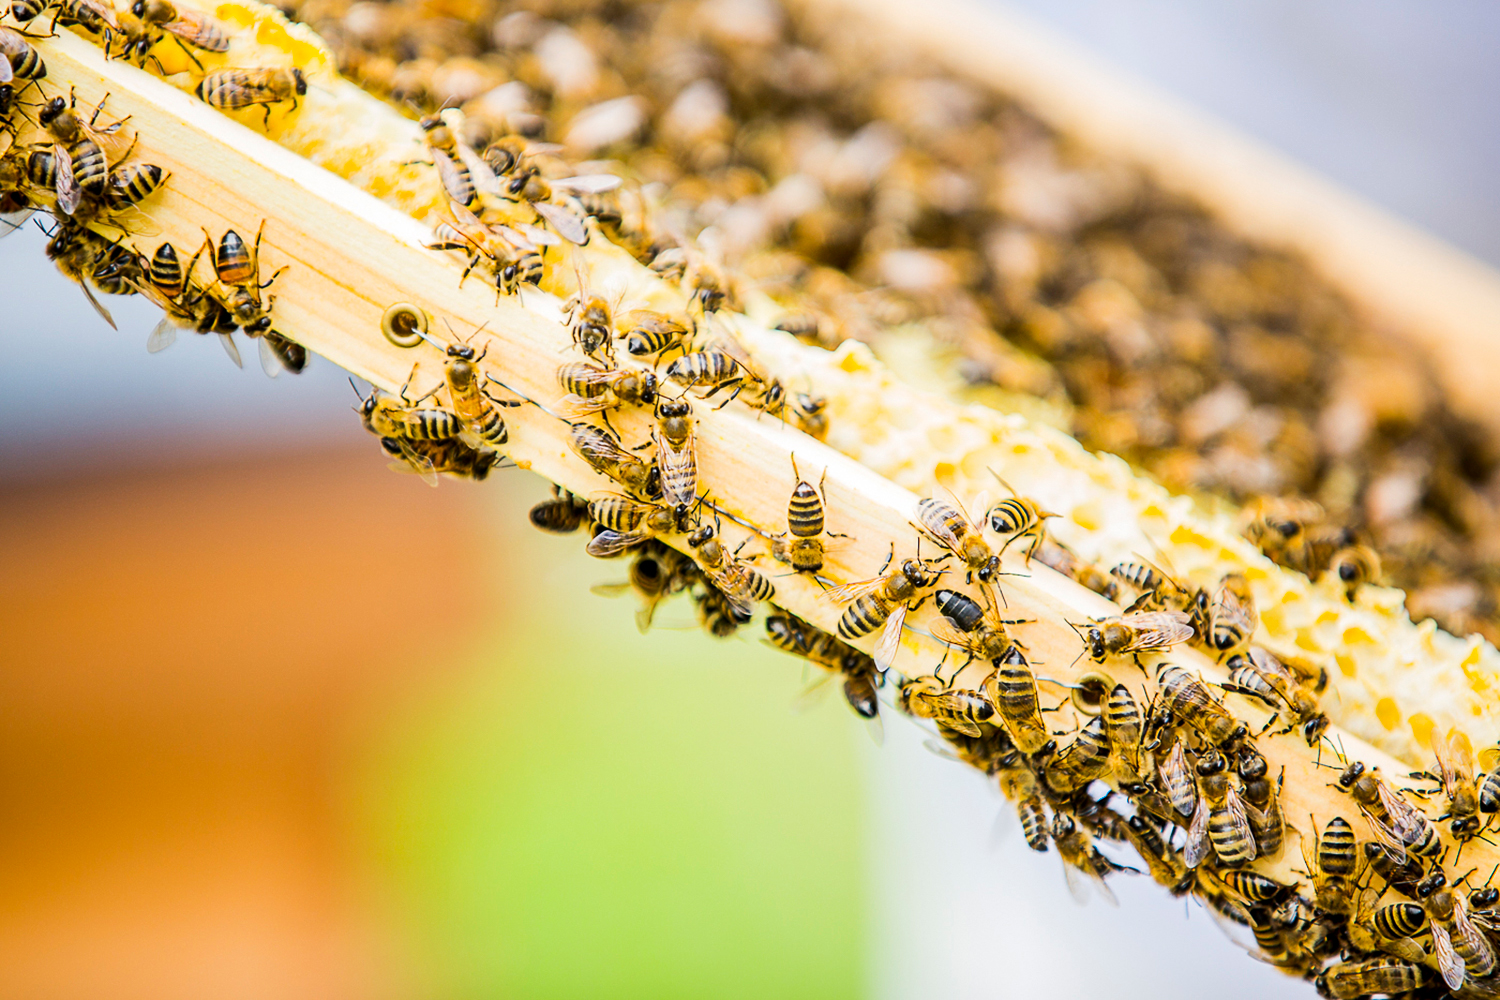 3-FEATURED-BEES.jpg